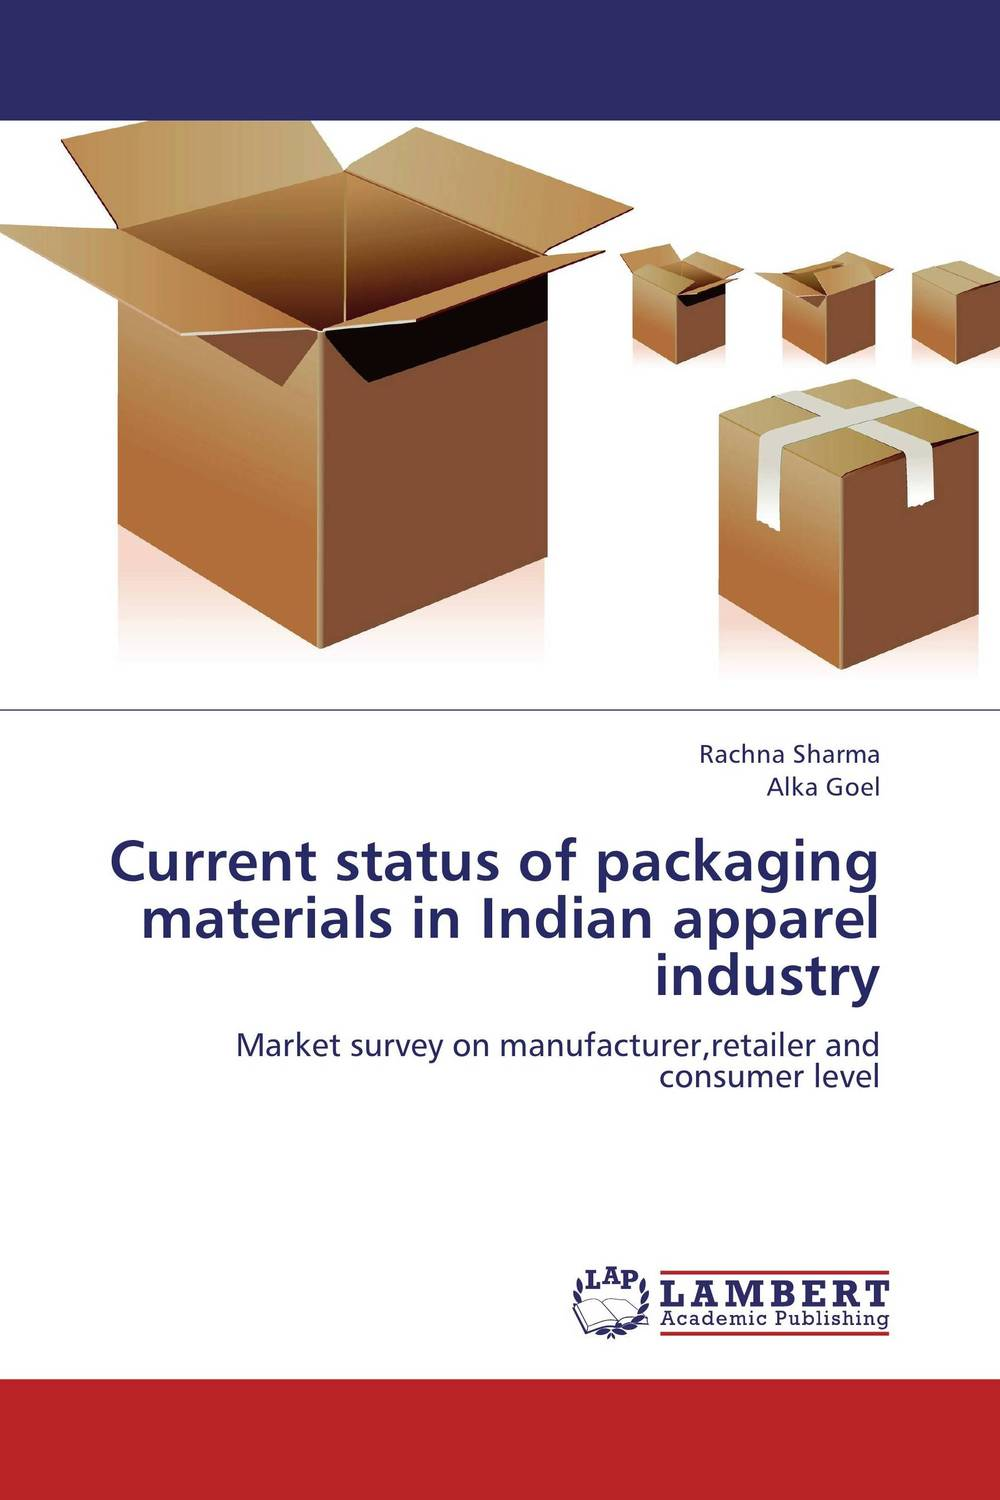 Current status of packaging materials in Indian apparel industry